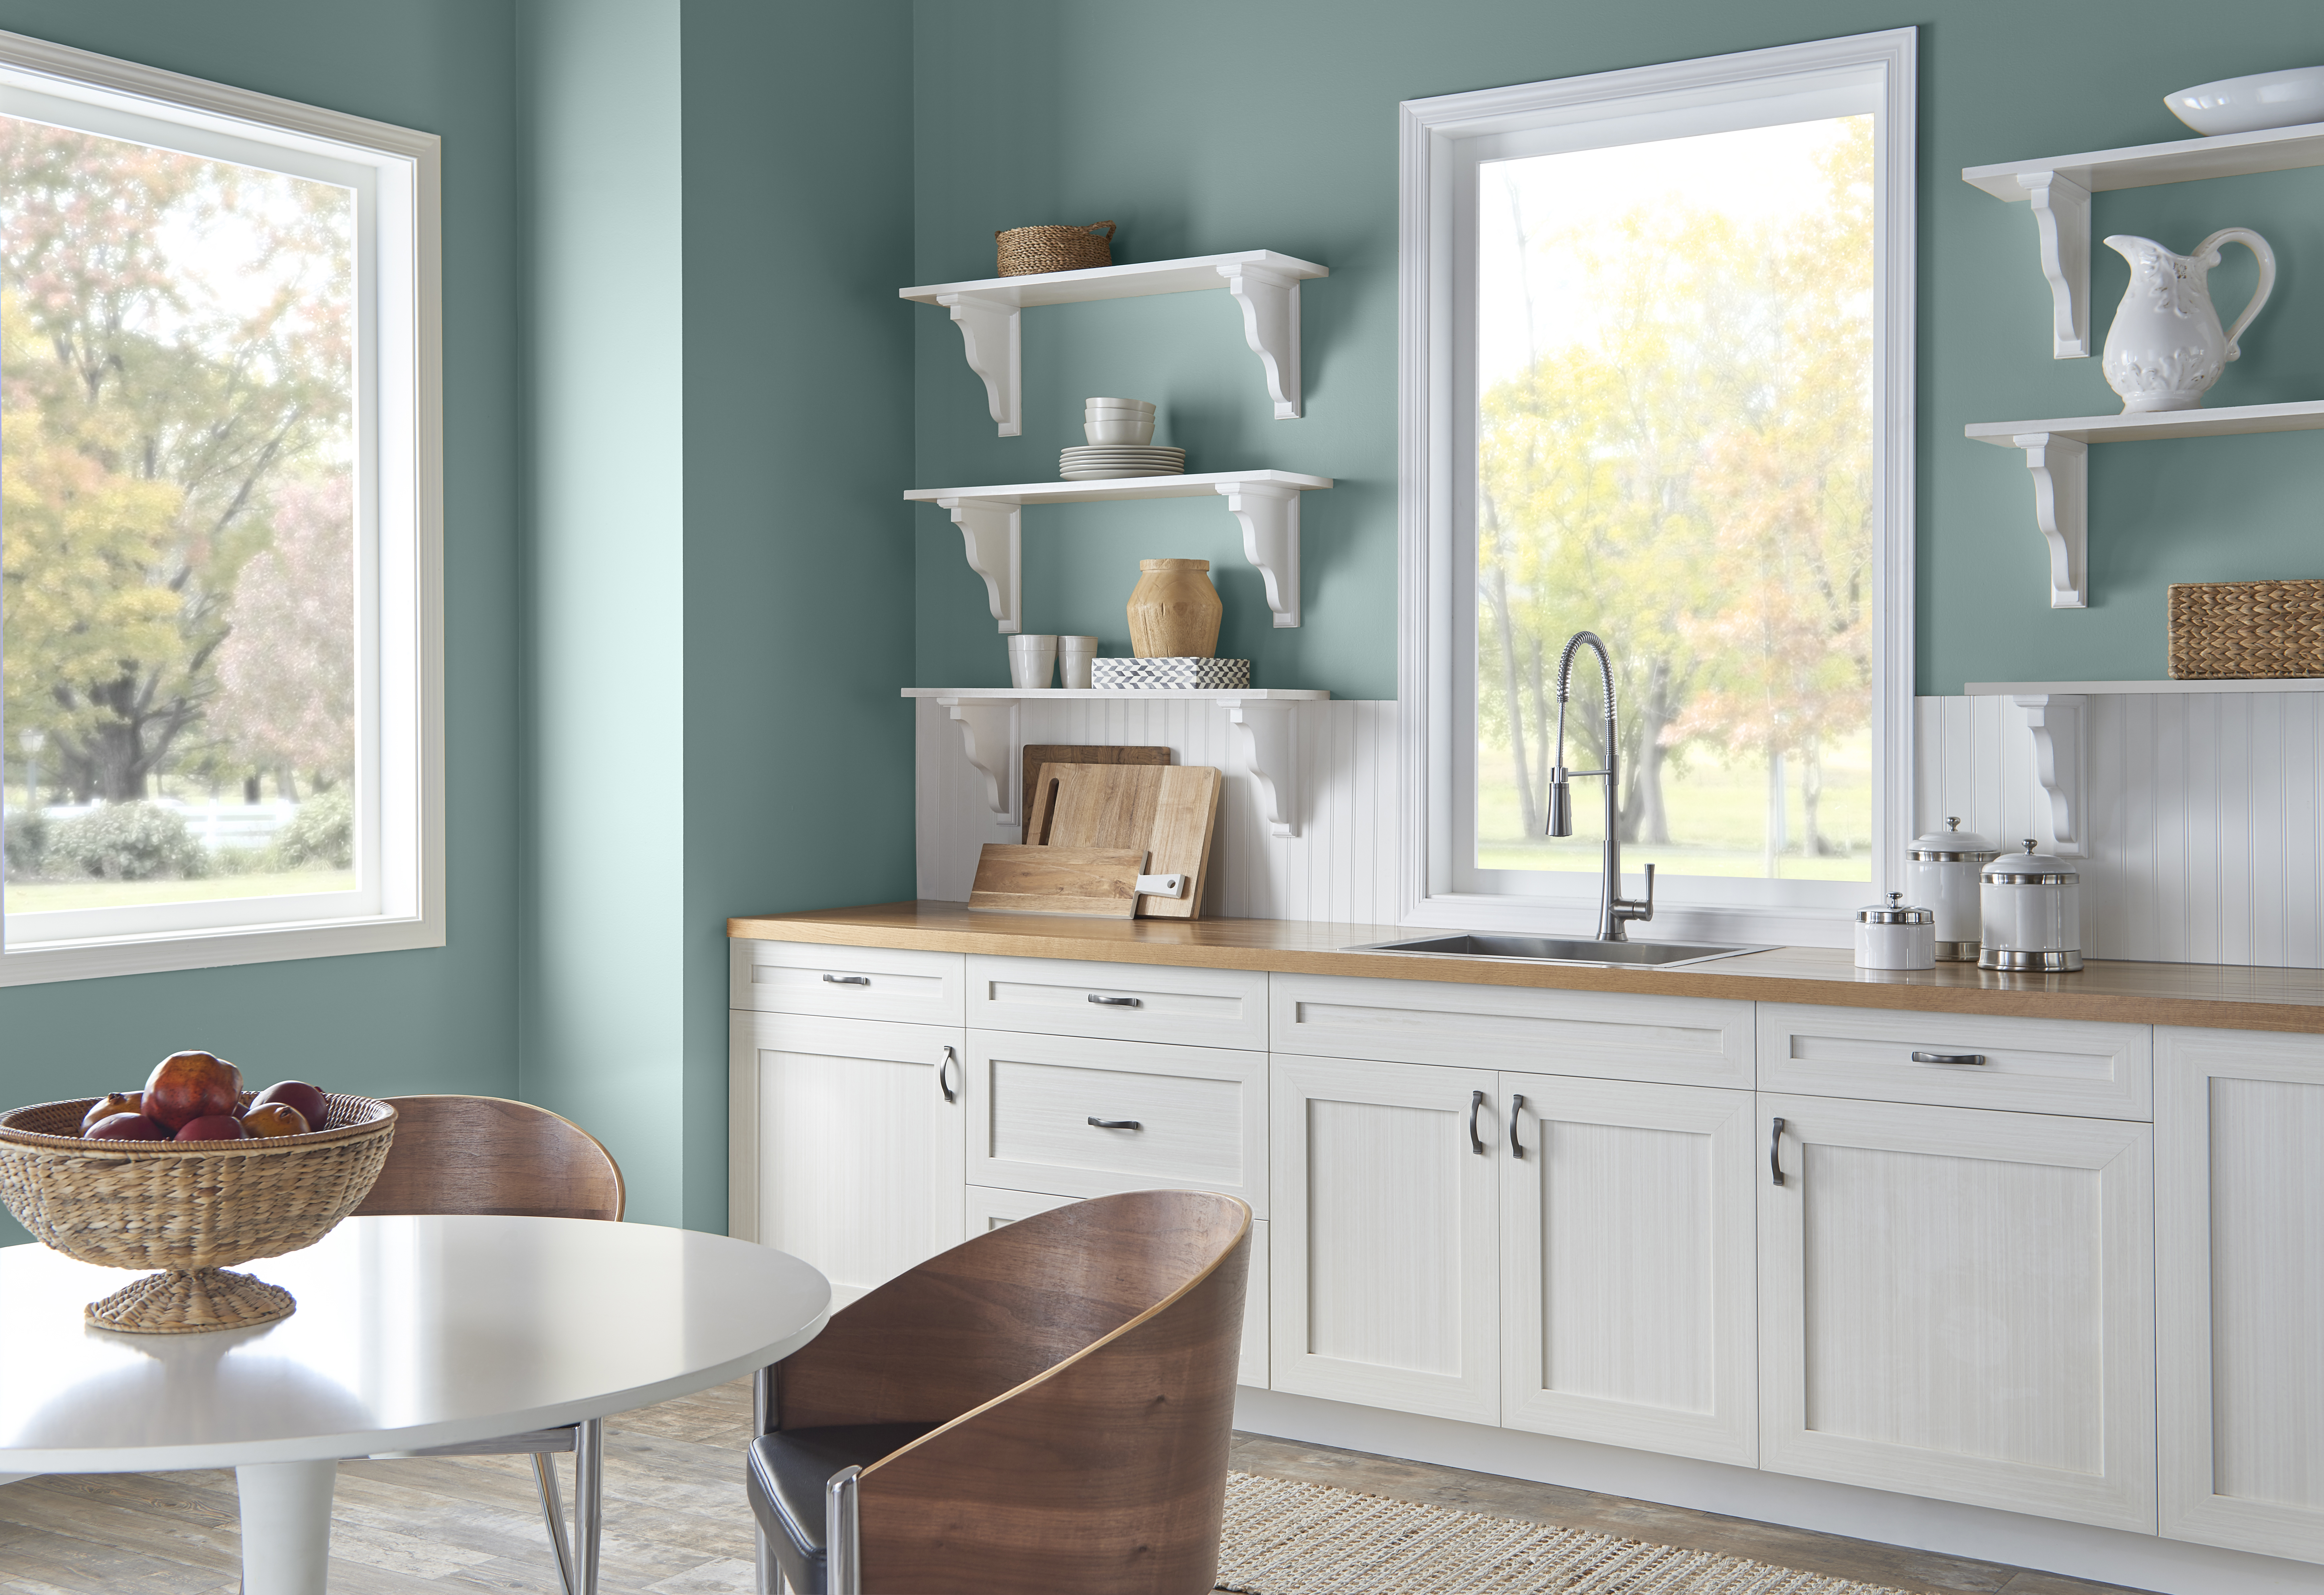 Mustard Color Paint For Kitchen These Paint Trends Will Be Huge In 2019 According To Pinterest